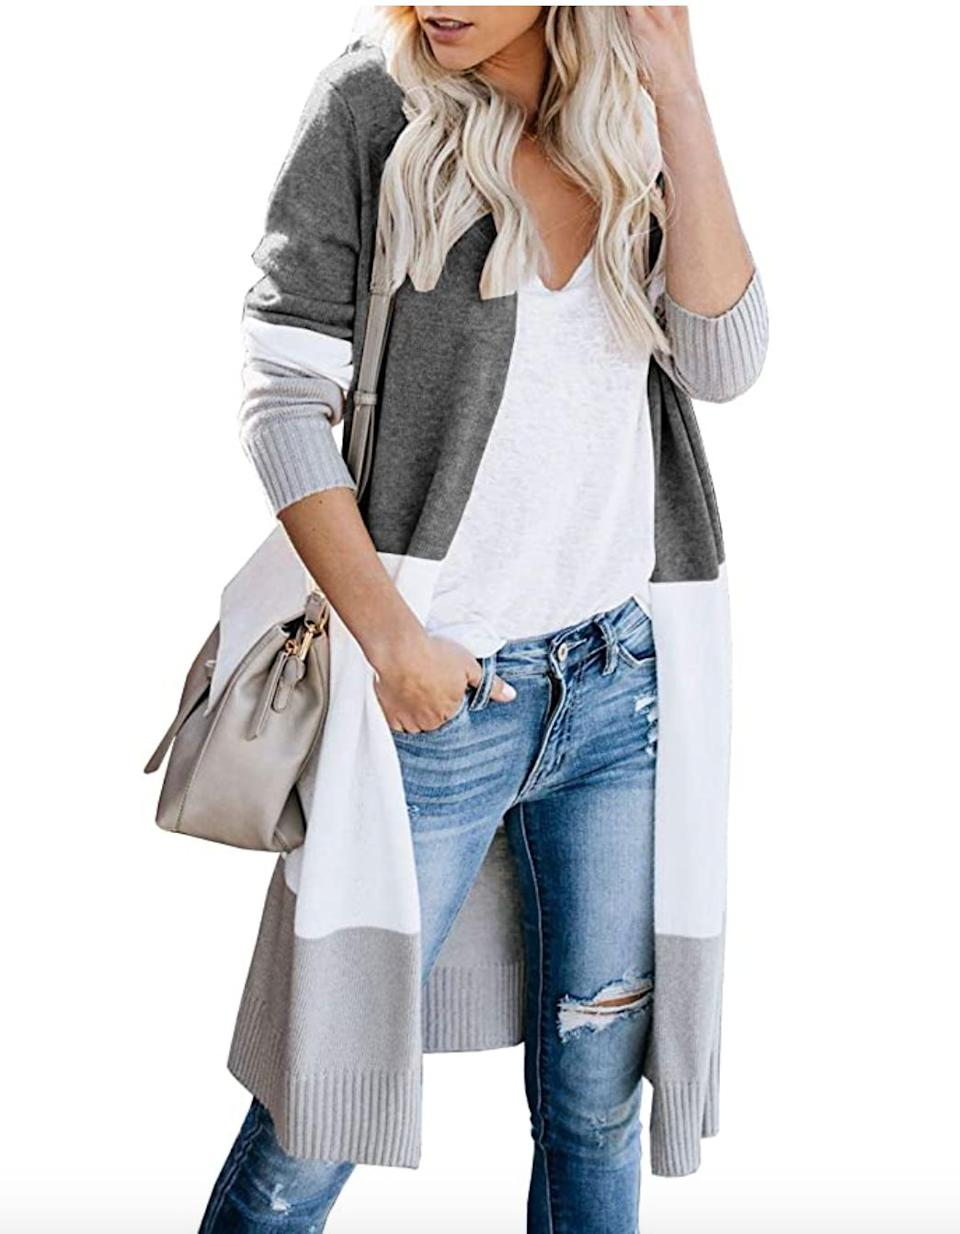 "<a href=""https://amzn.to/2RRKqrI"" target=""_blank"" rel=""noopener noreferrer"">This long colorblock cardigan</a> is available in sizes XS to XL in 14 colors. Find it for $32 on <a href=""https://amzn.to/2RRKqrI"" target=""_blank"" rel=""noopener noreferrer"">Amazon</a>."